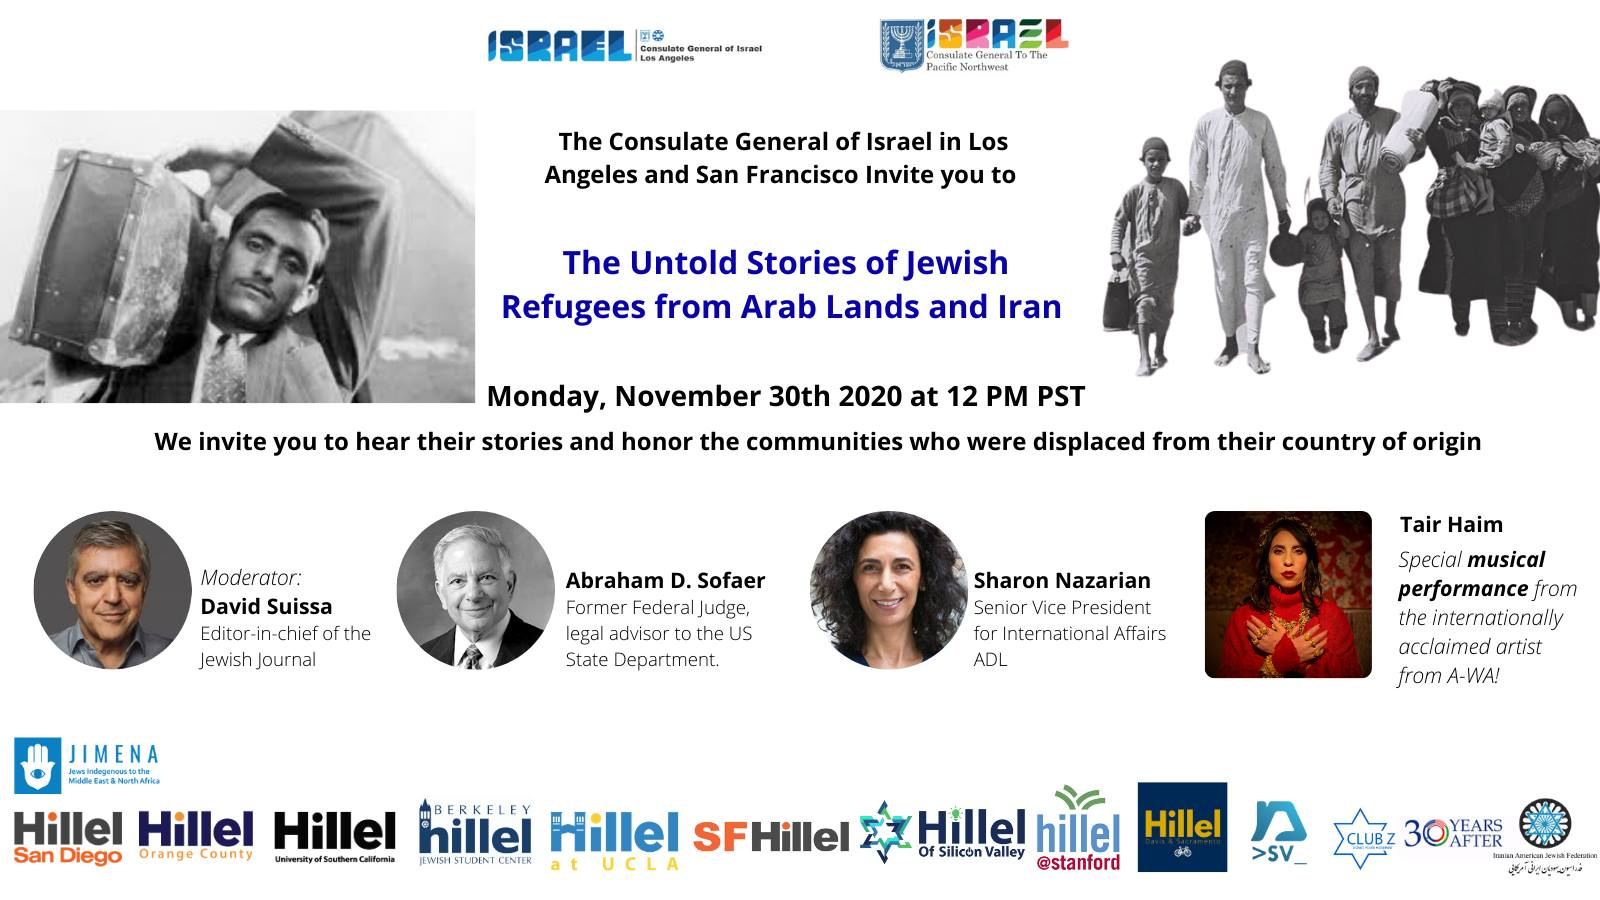 The Untold Stories of Jewish Refugees from Arab Lands and Iran